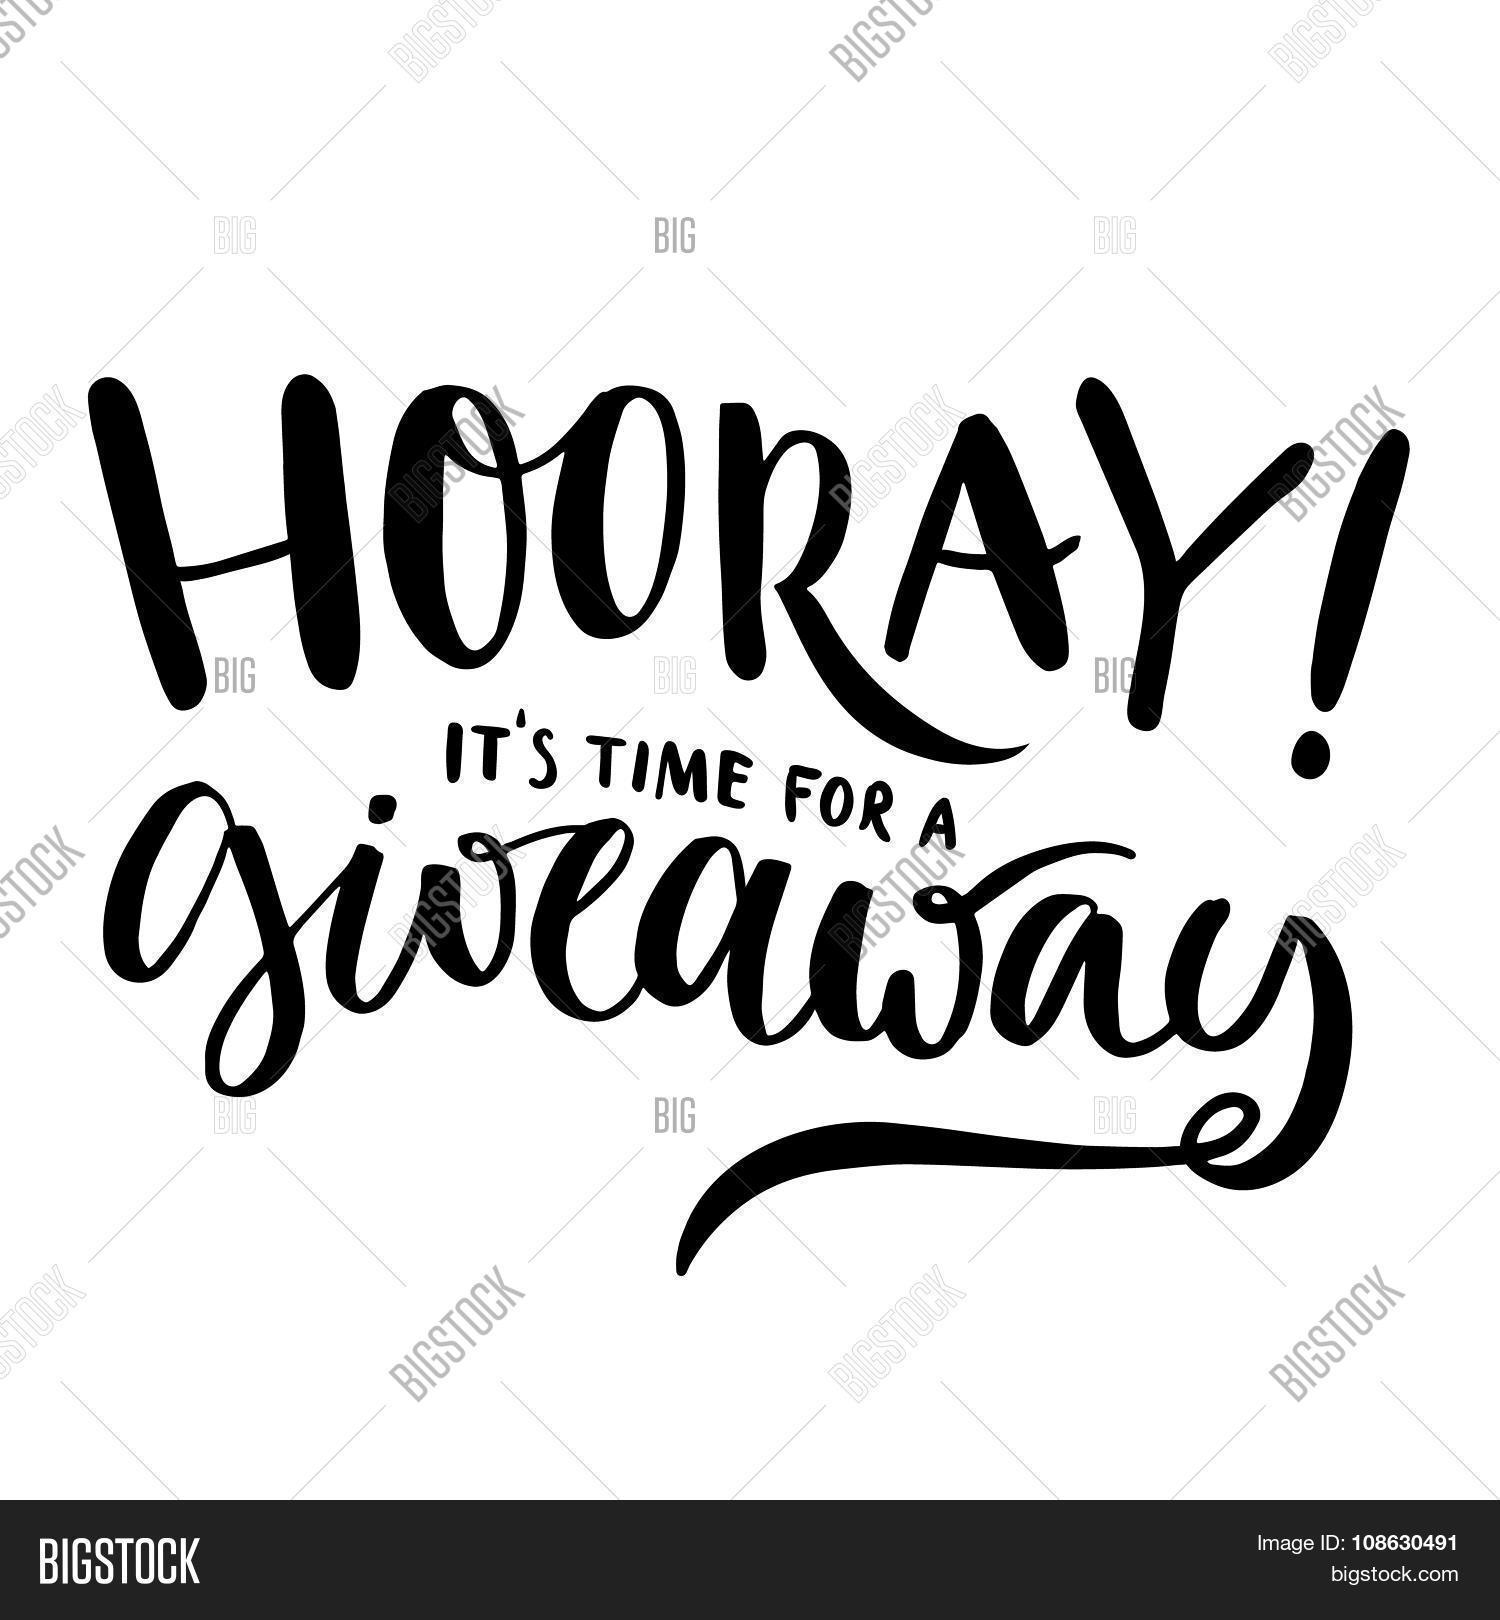 Hooray, Time Giveaway Vector & Photo (Free Trial) | Bigstock